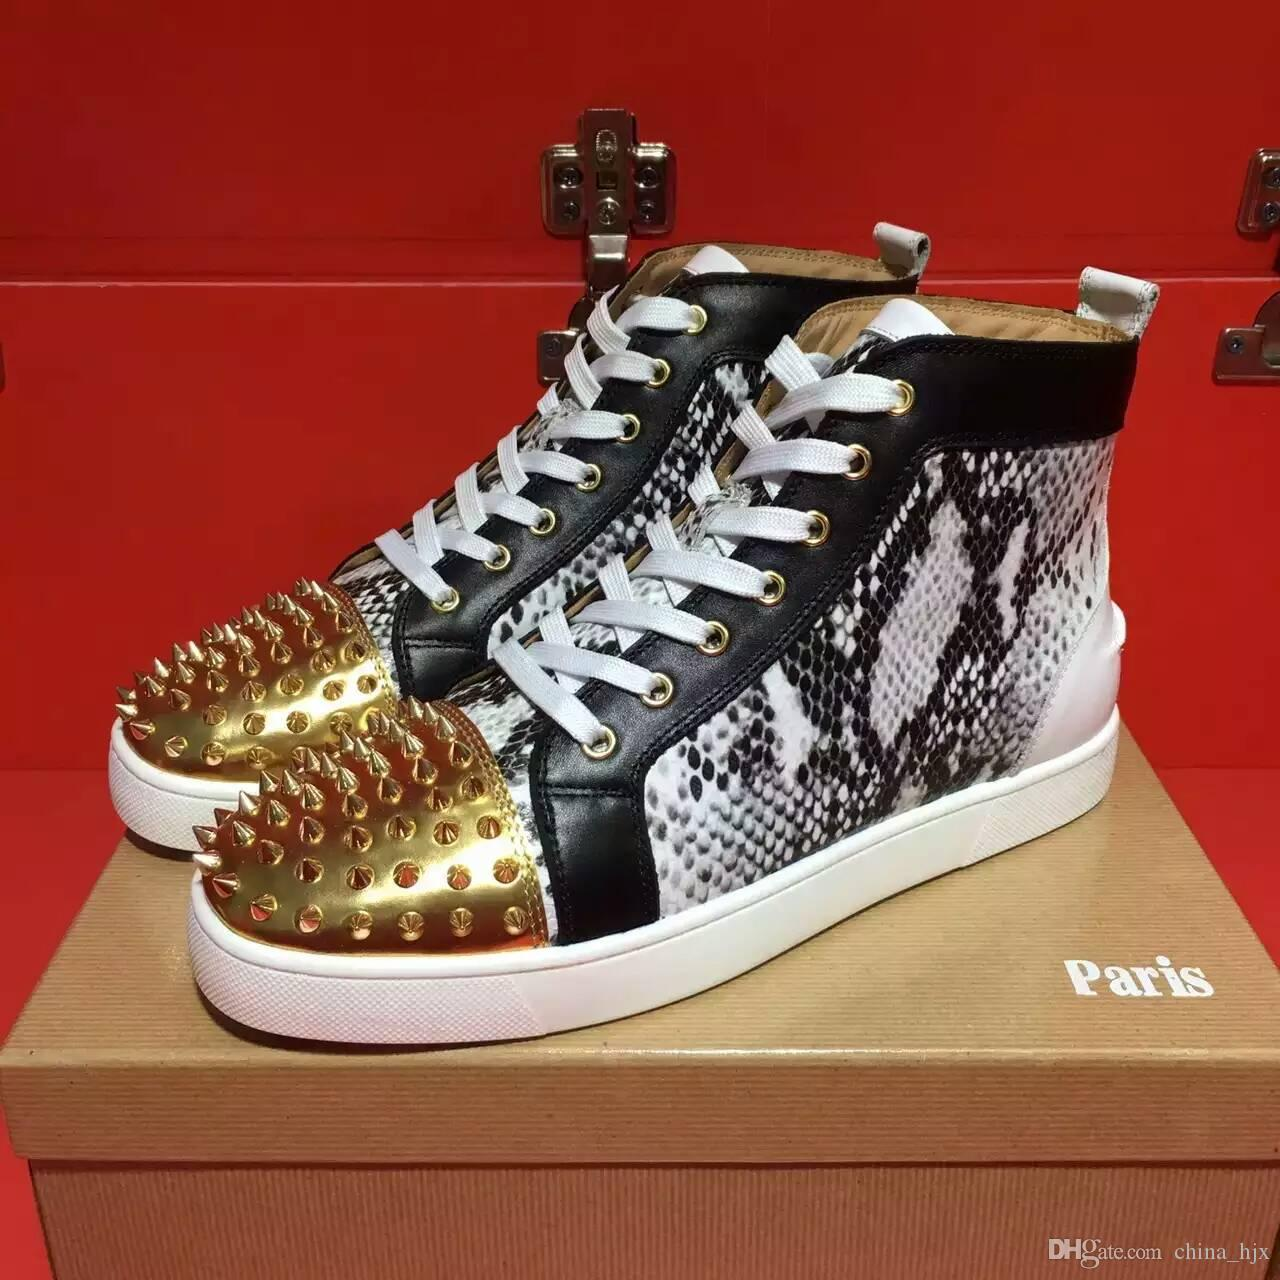 a195efb49ffb Size36 46 Men Women High End Custom High Top Golden Rivets Casual Shoes  Trend Front End Design Red Bottoms Sneakers Flat Spiked Shoes Vegan Shoes  Comfort ...